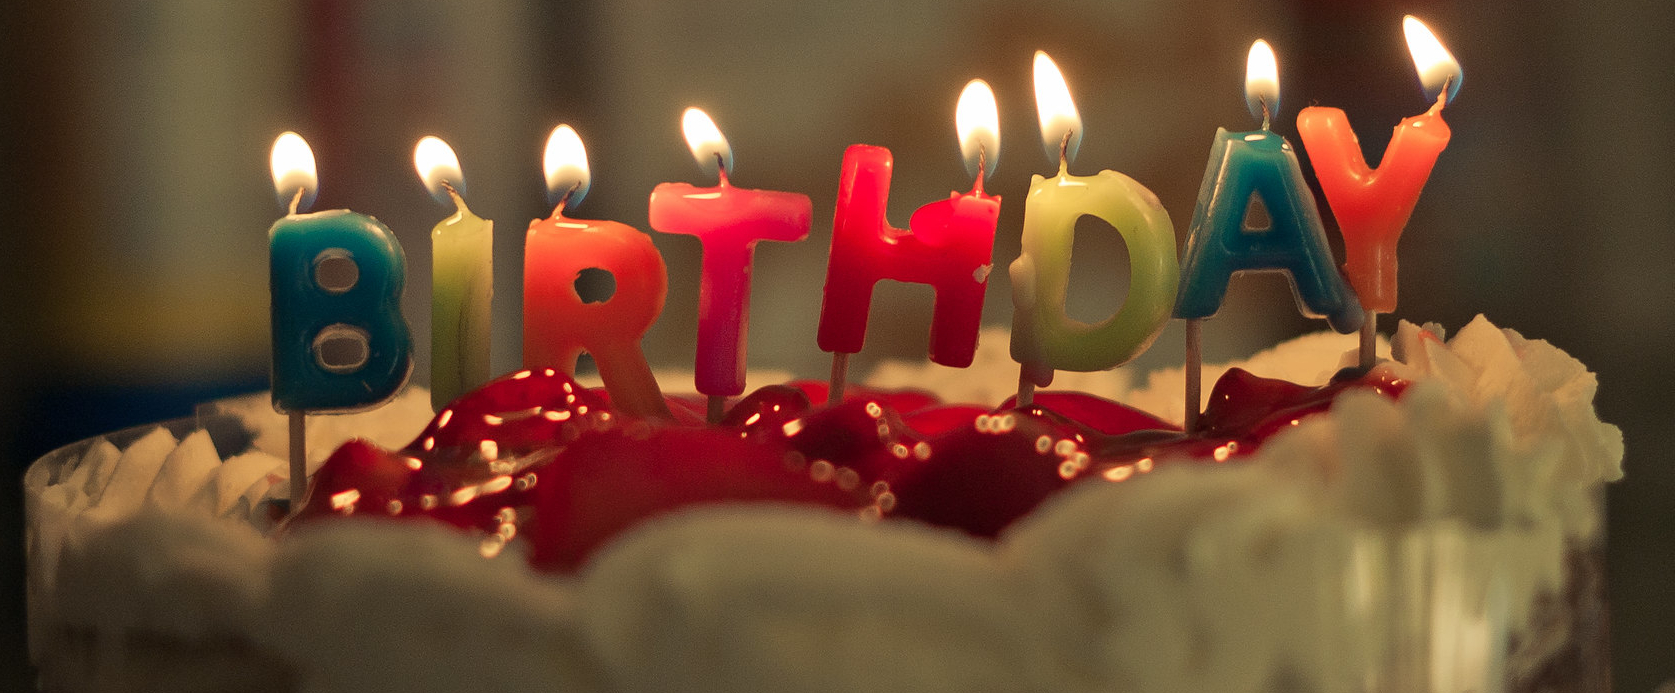 Photo of lit candles on a cake that spell our 'birthday'